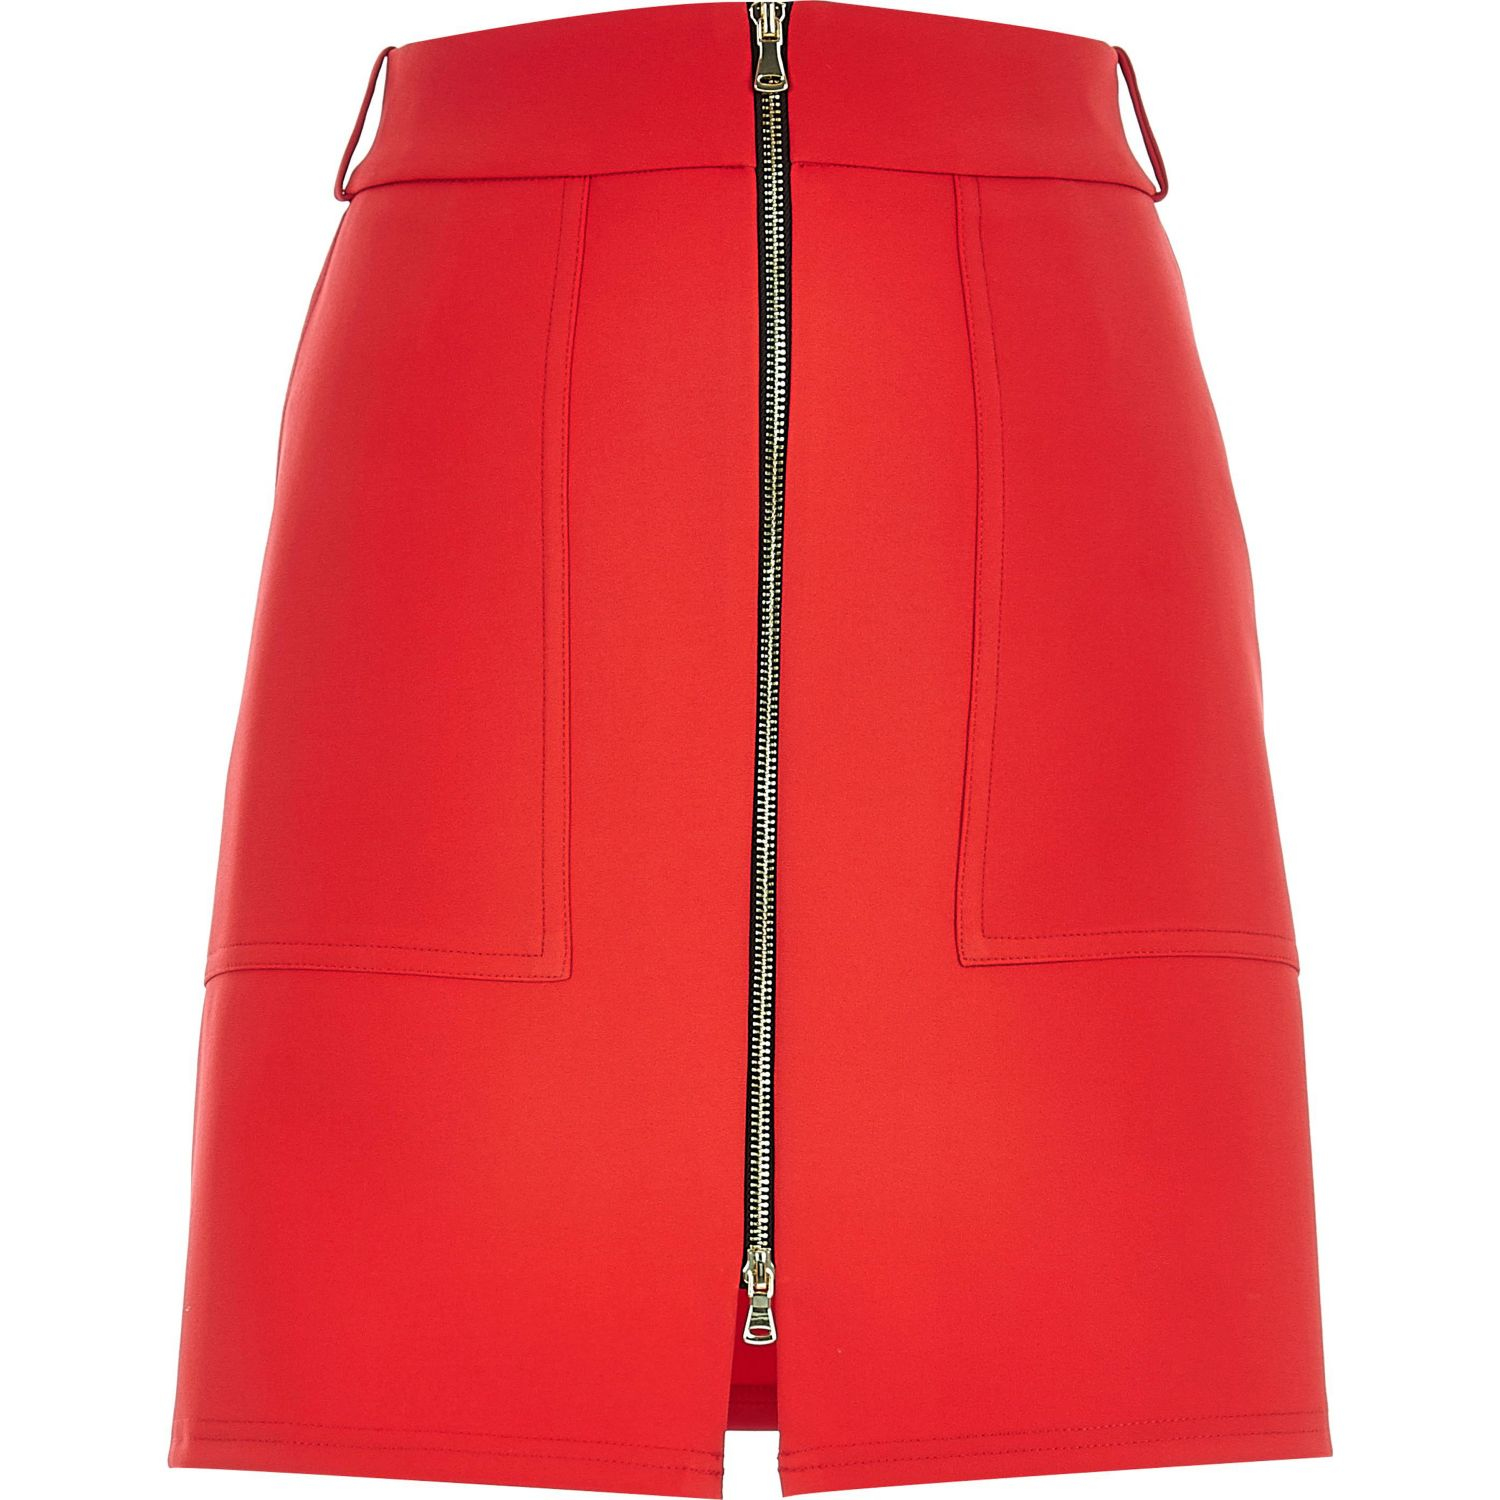 River island Red Zip-up A-line Skirt in Red | Lyst